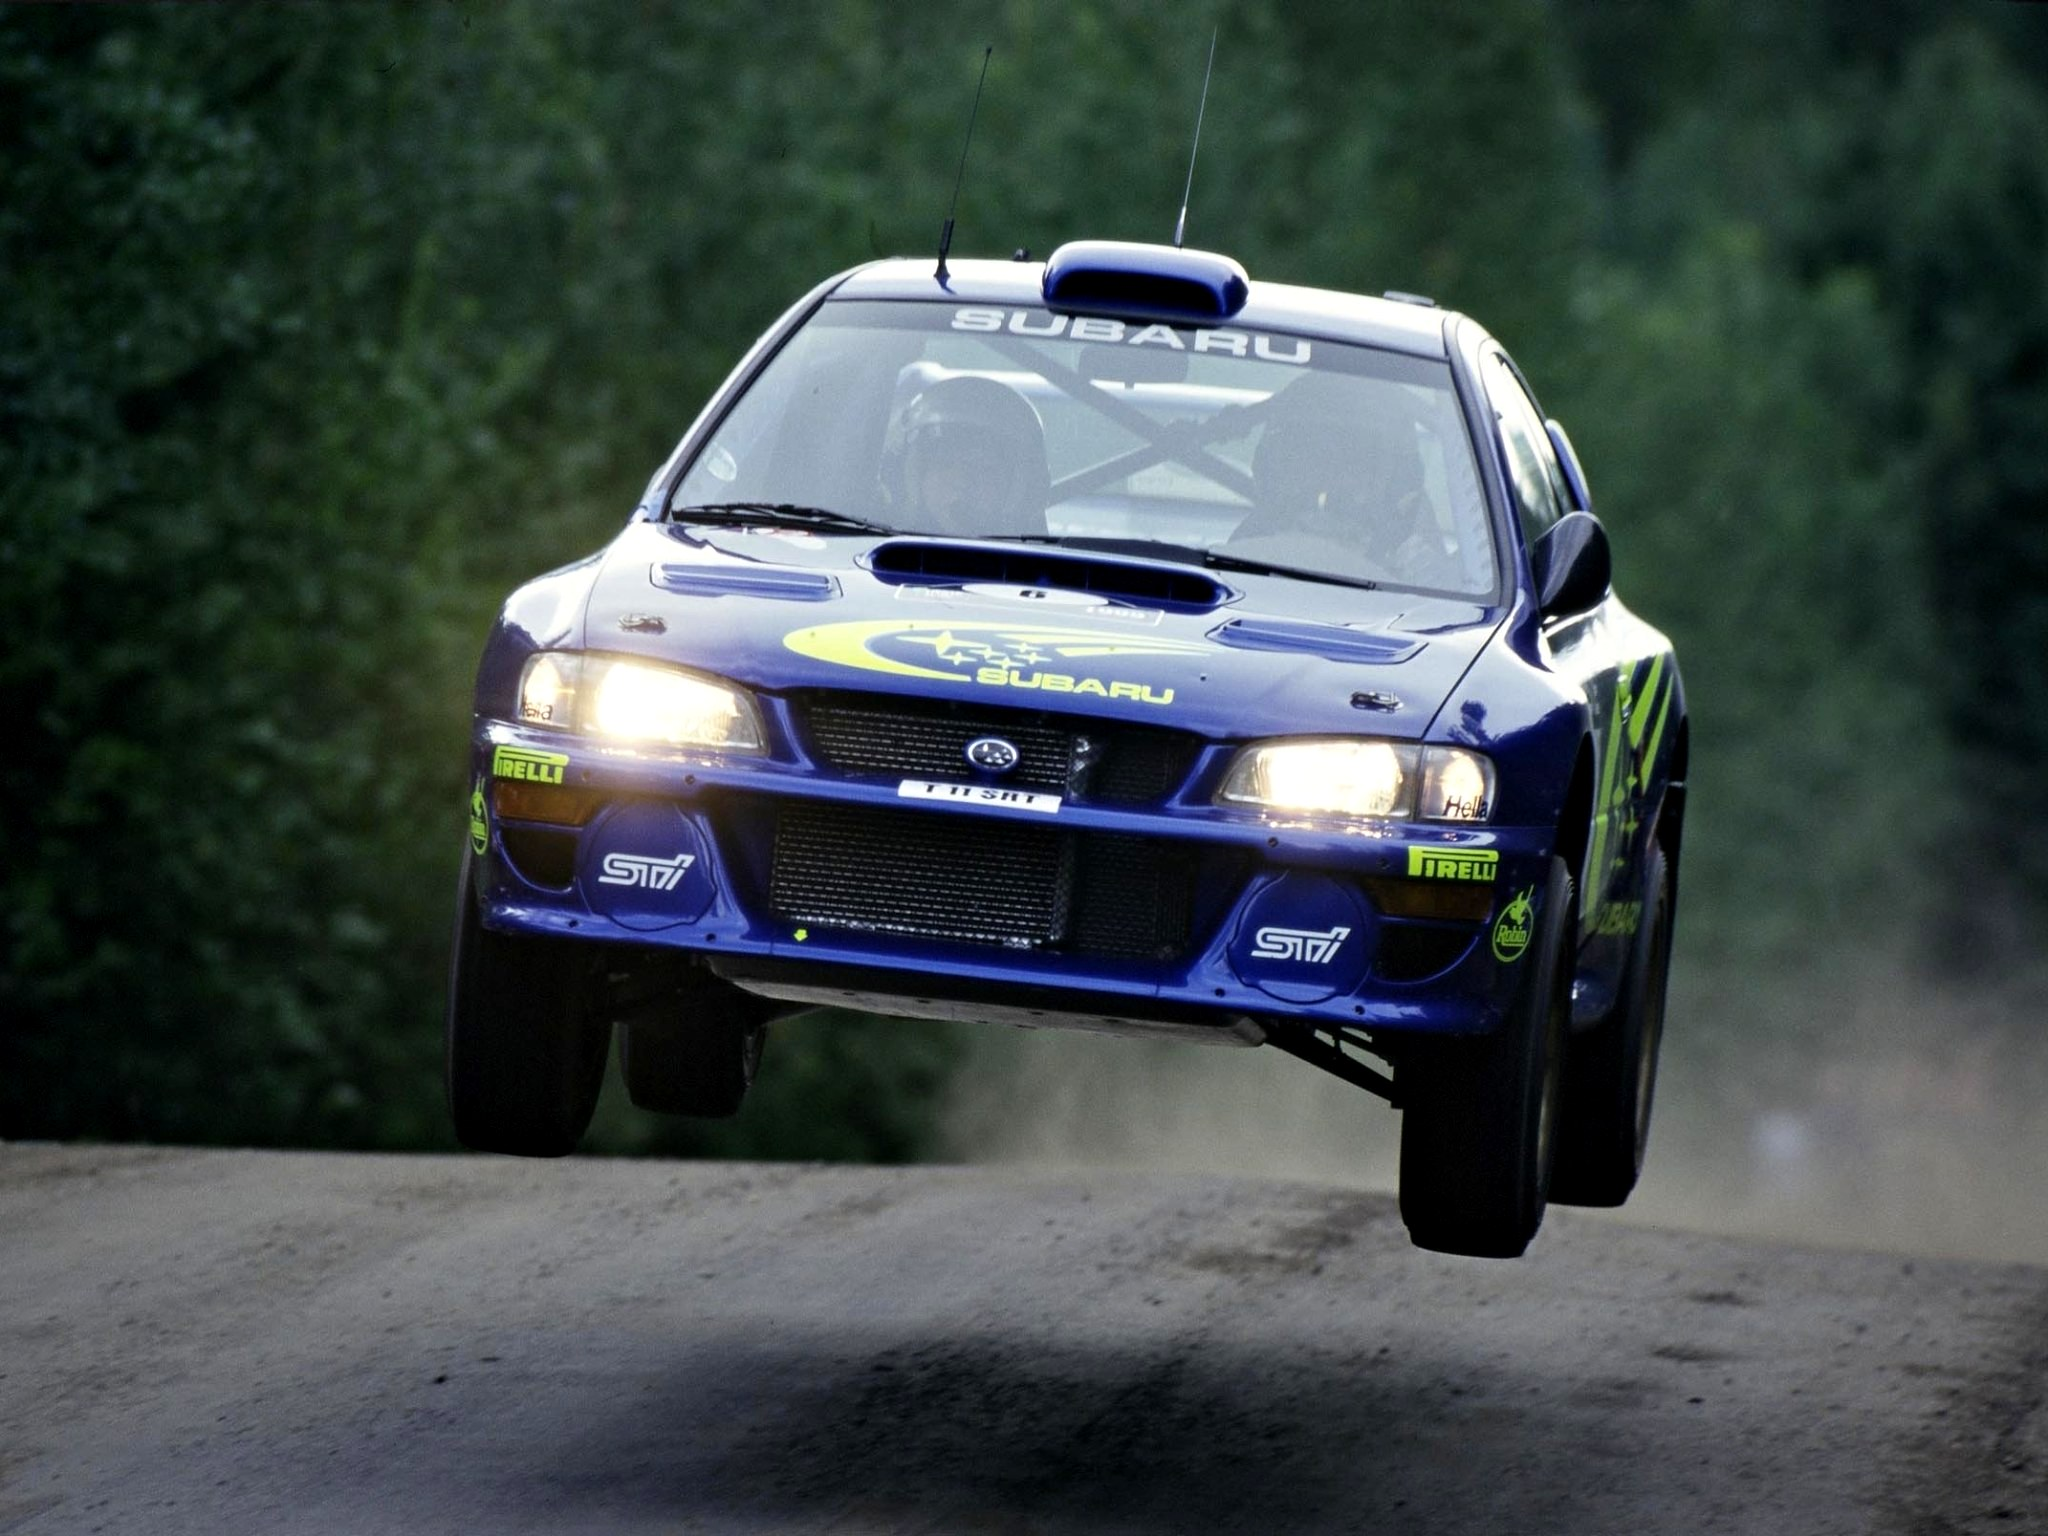 Subaru Impreza Wrc Photos Photogallery With 38 Pics